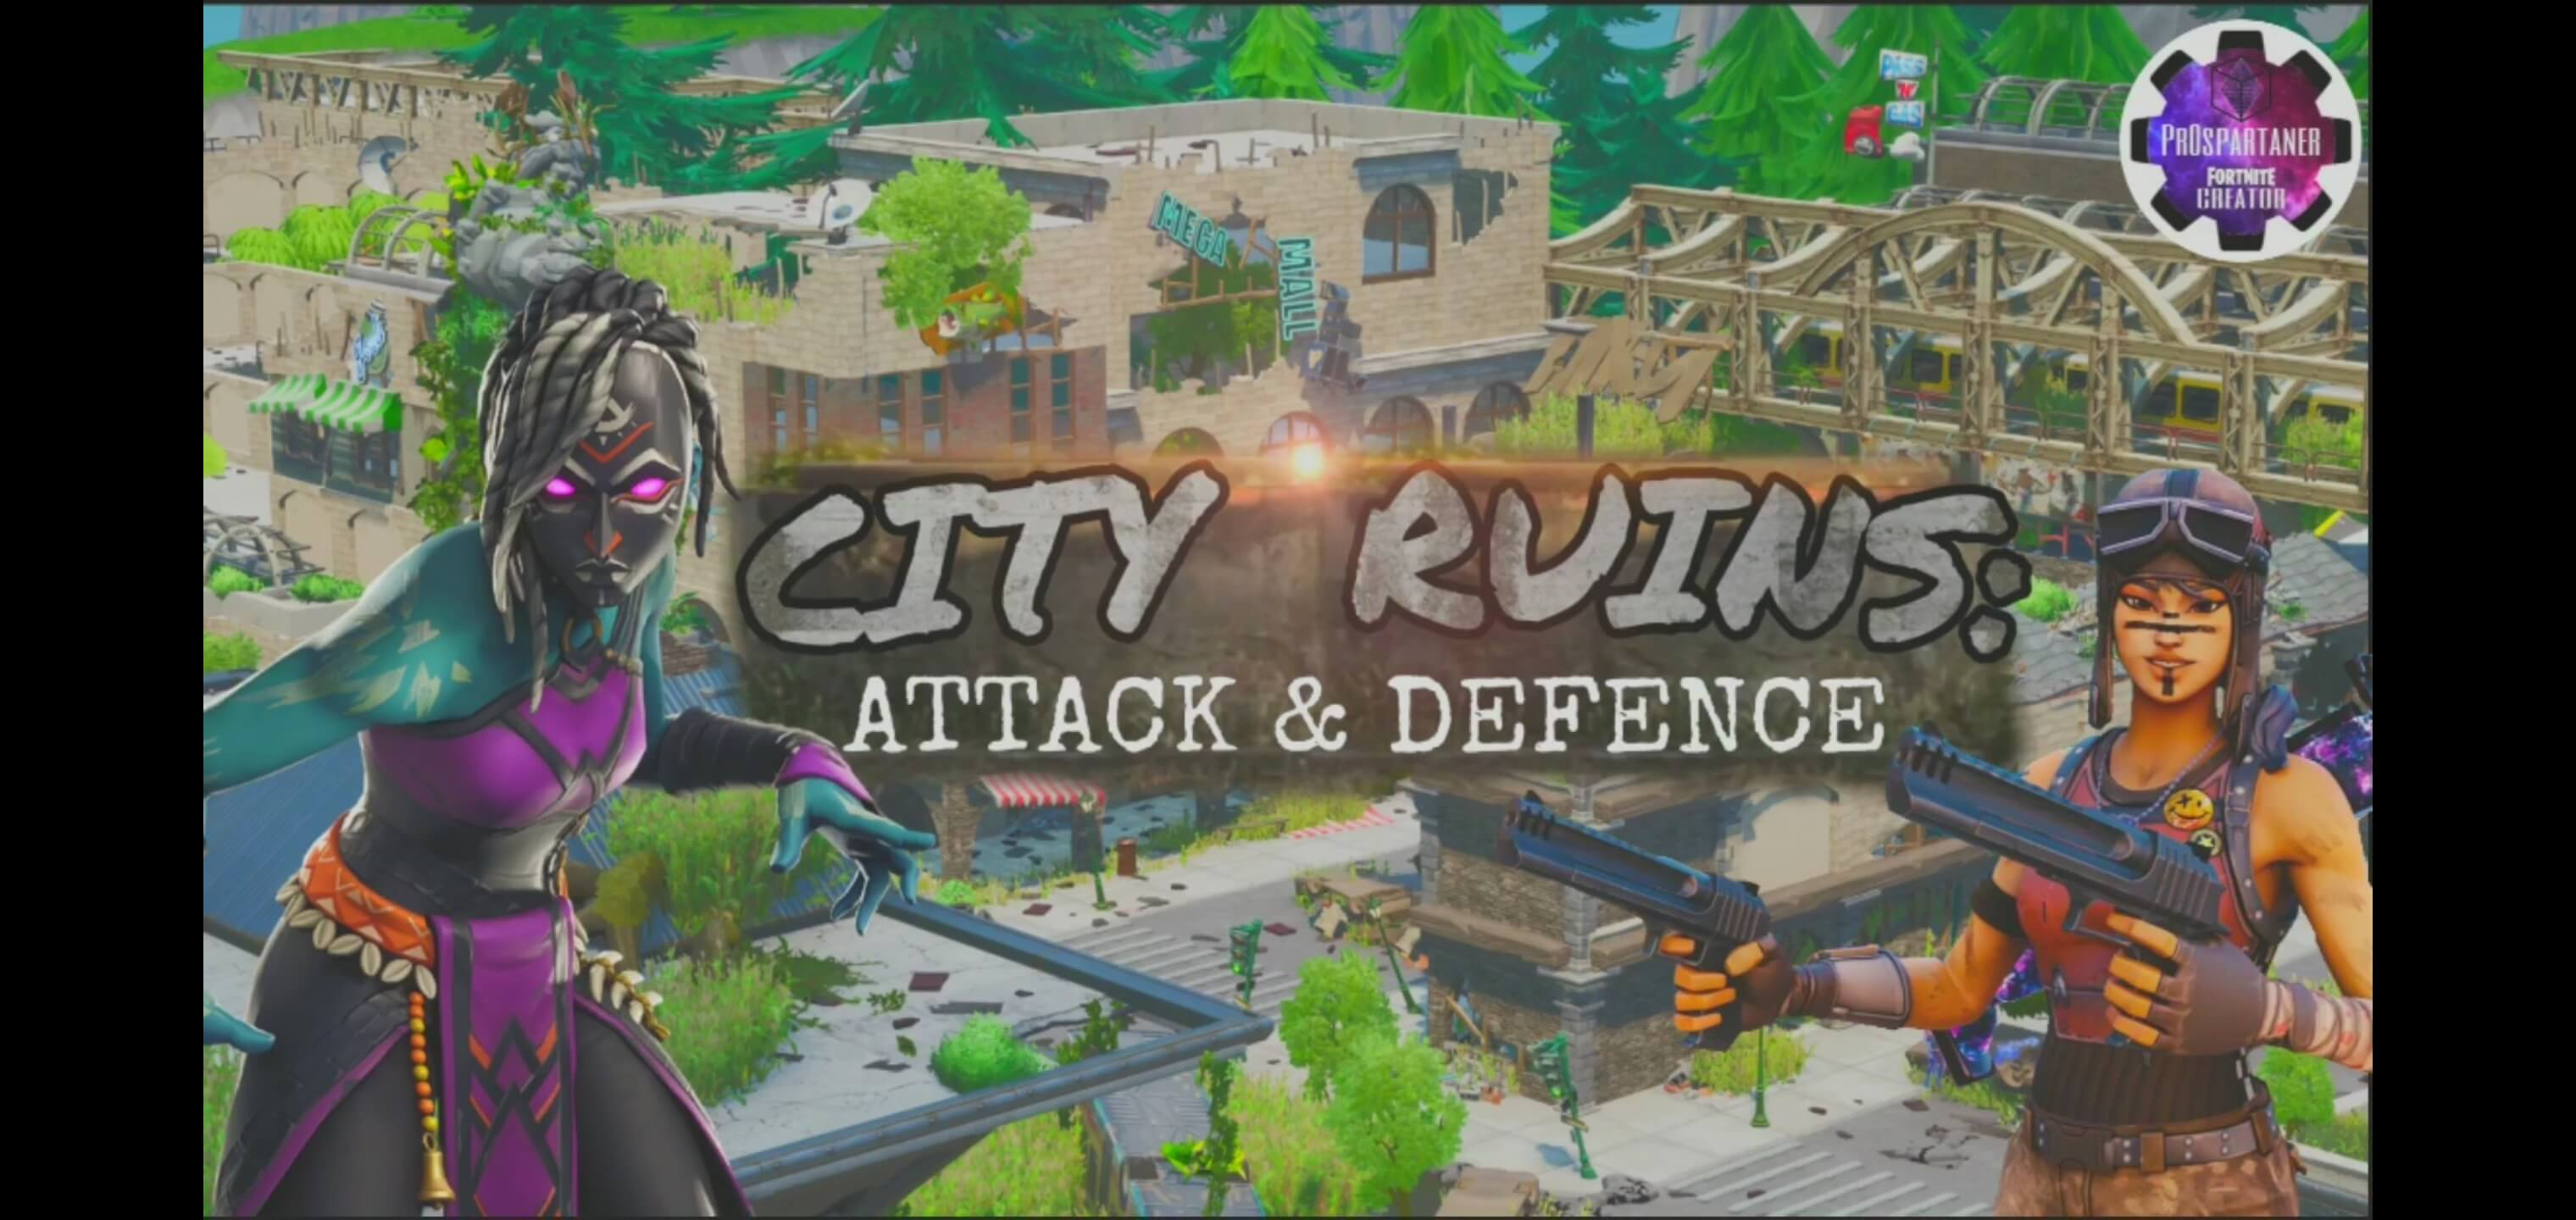 CITY RUINS: ATTACK & DEFENCE